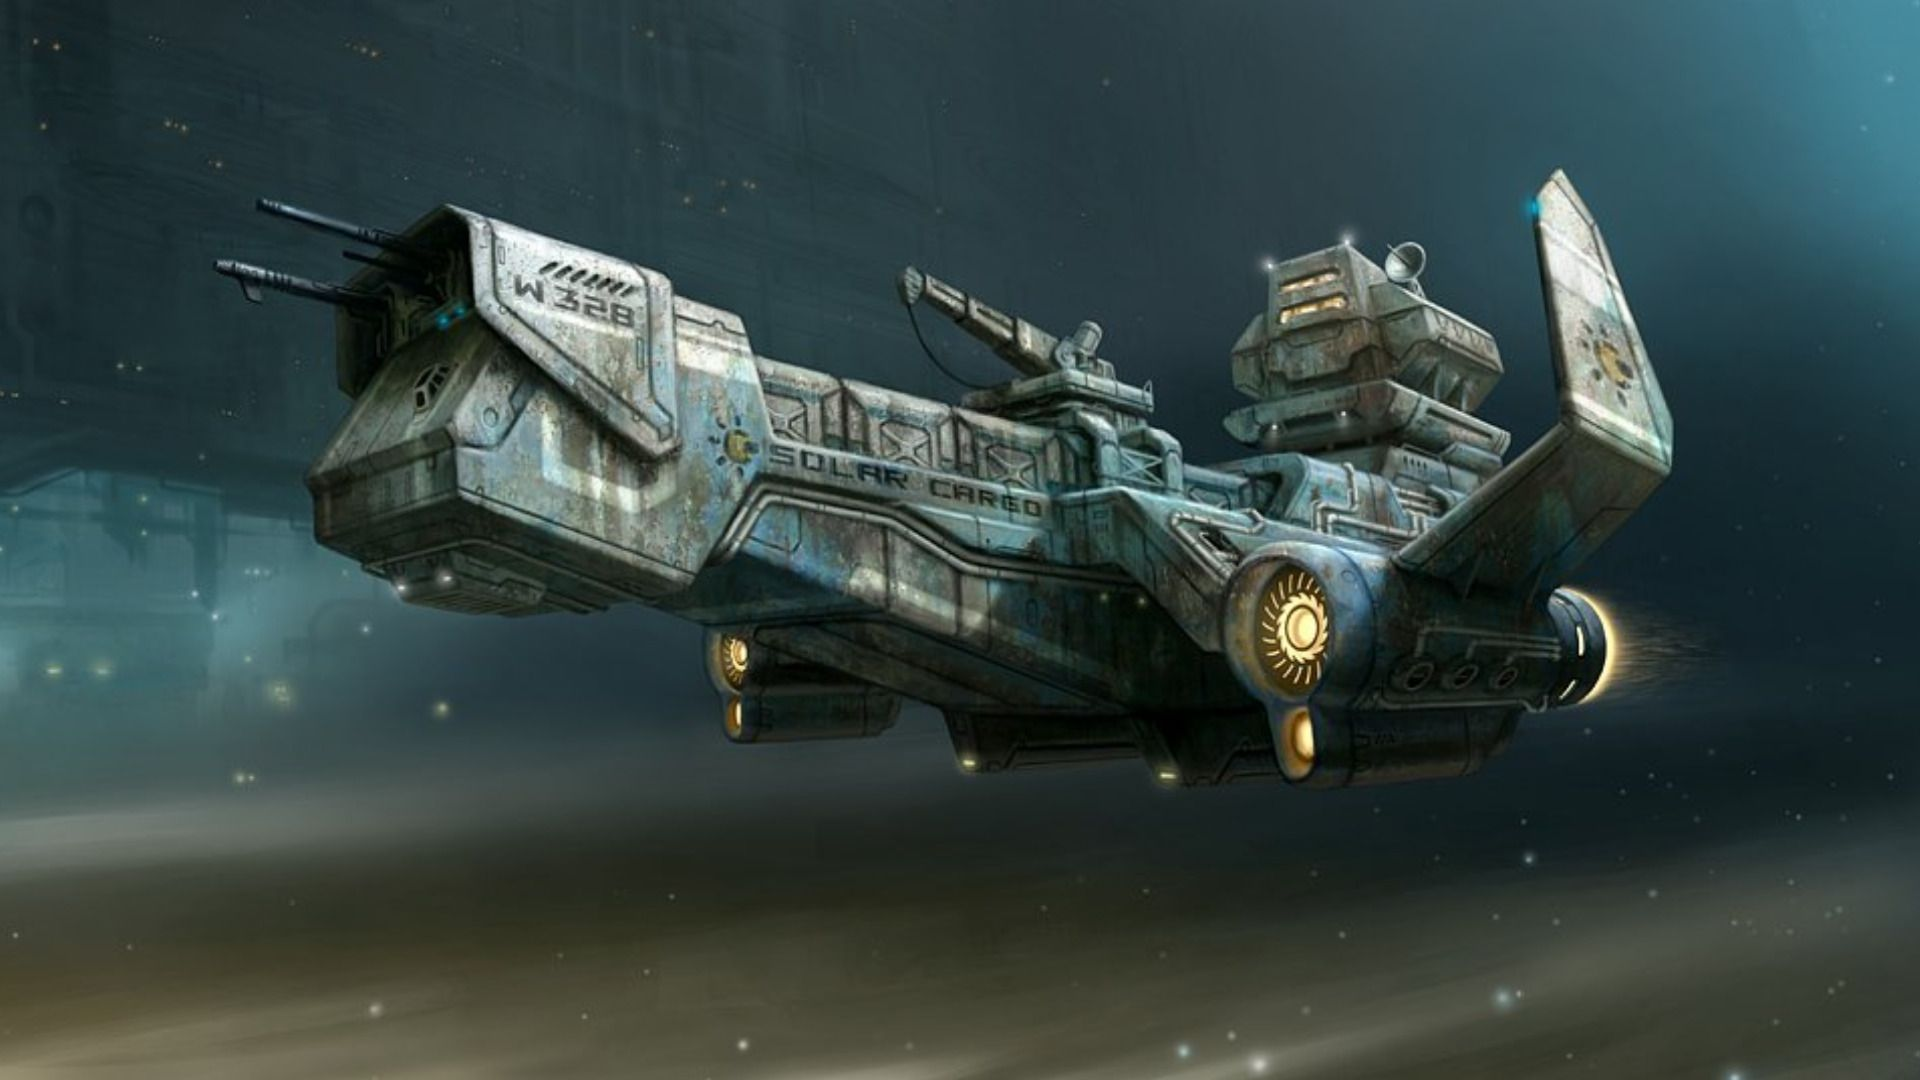 Sci Fi - Spaceship Wallpaper | Futuristic Ships ...